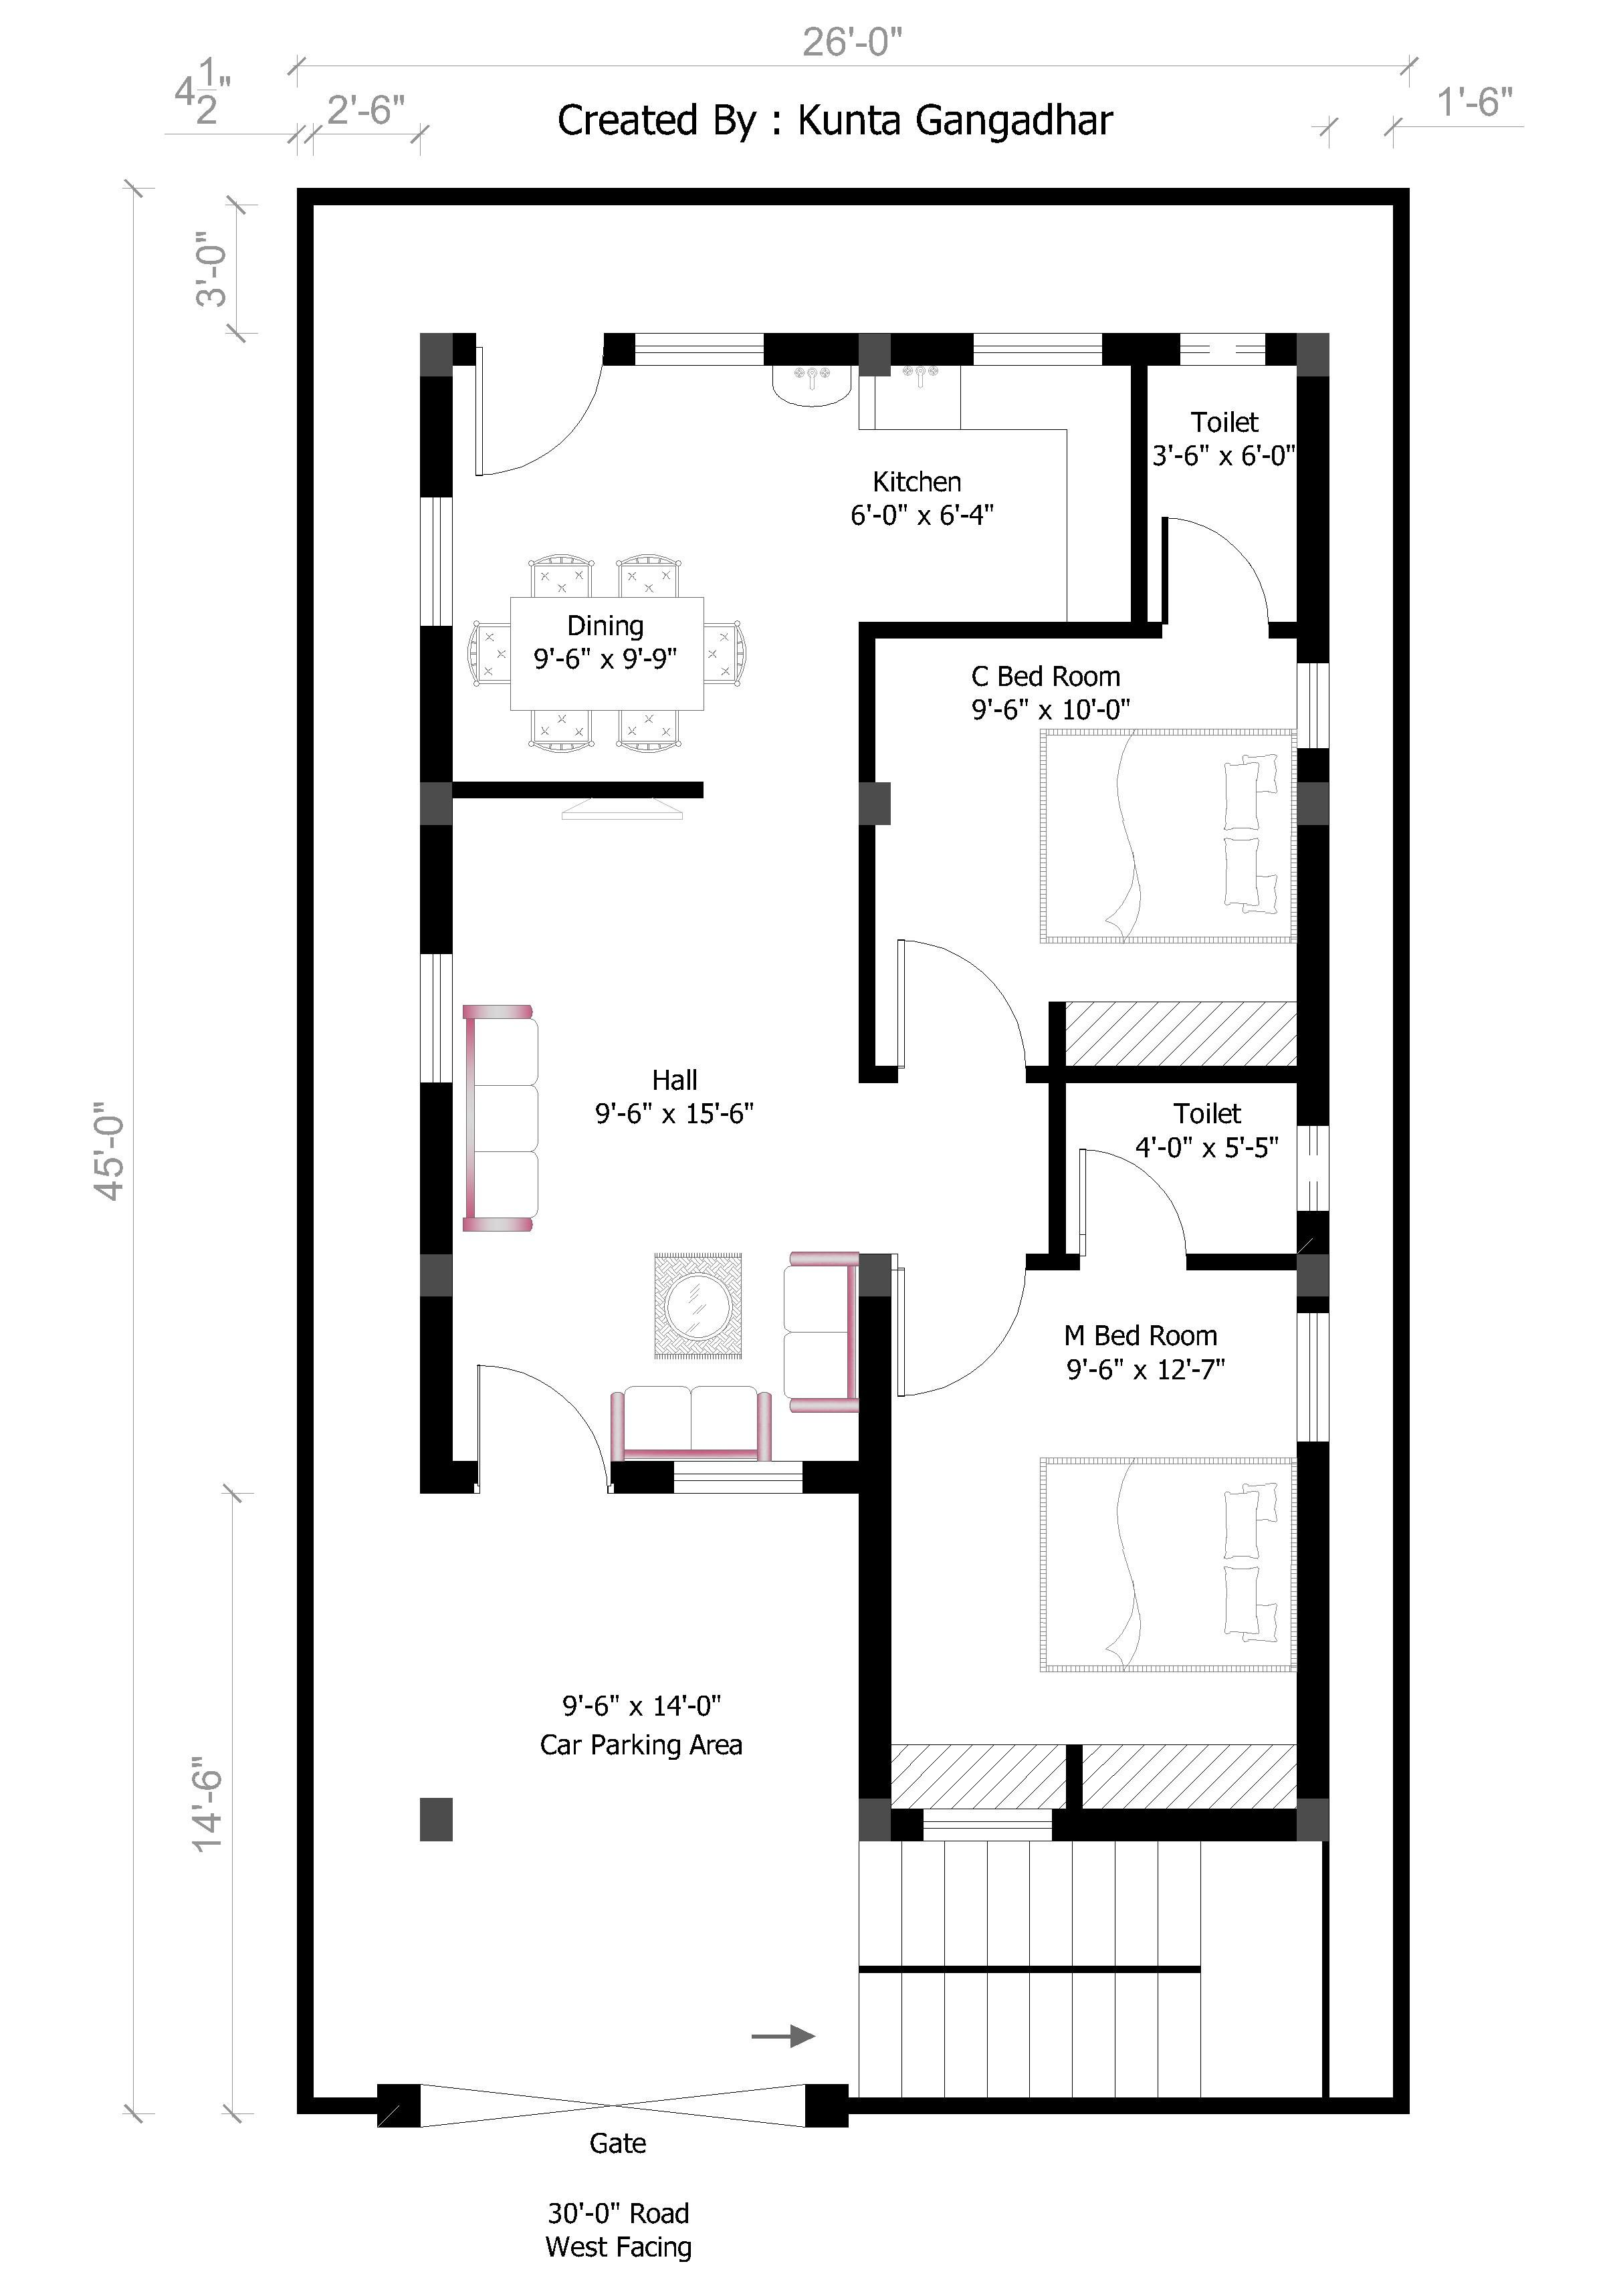 west house plan also face double bed room by feet home designs interior rh pinterest